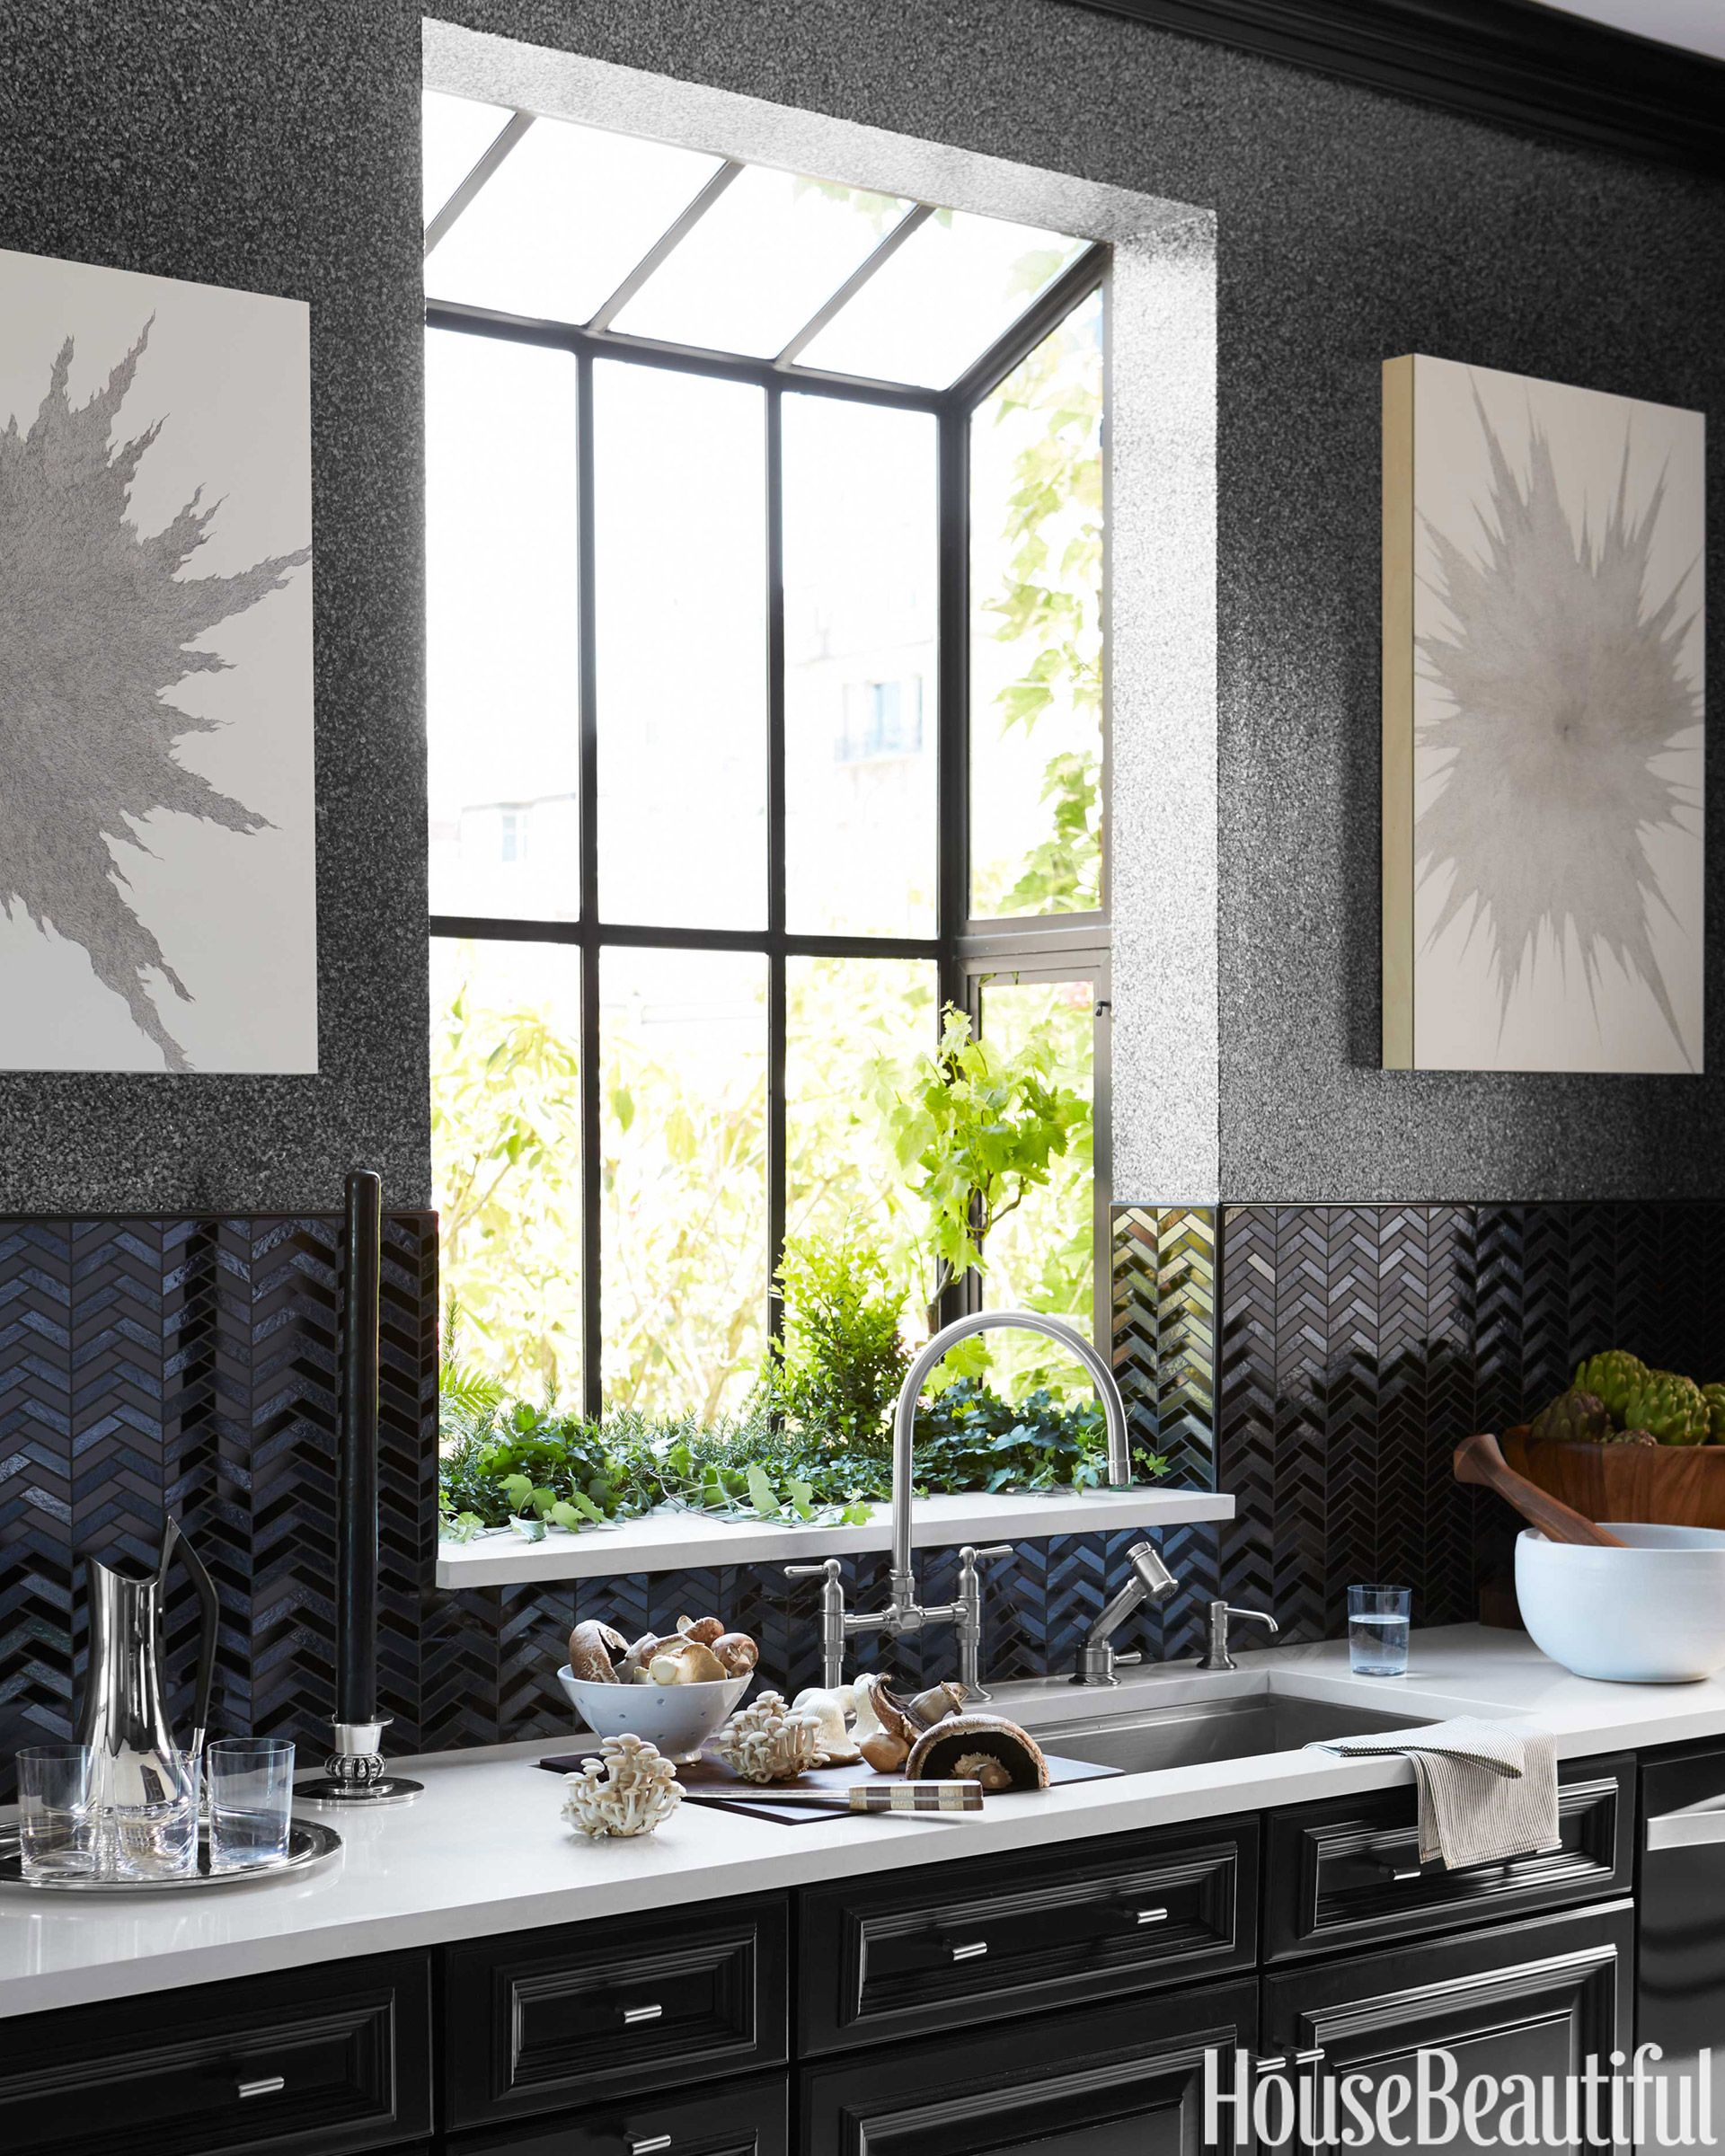 The Stages Sink Is Paired With A Hi Rise Bridge Faucet Both By Kohler Artworks Jenifer Kent James Baigrie Housebeautiful